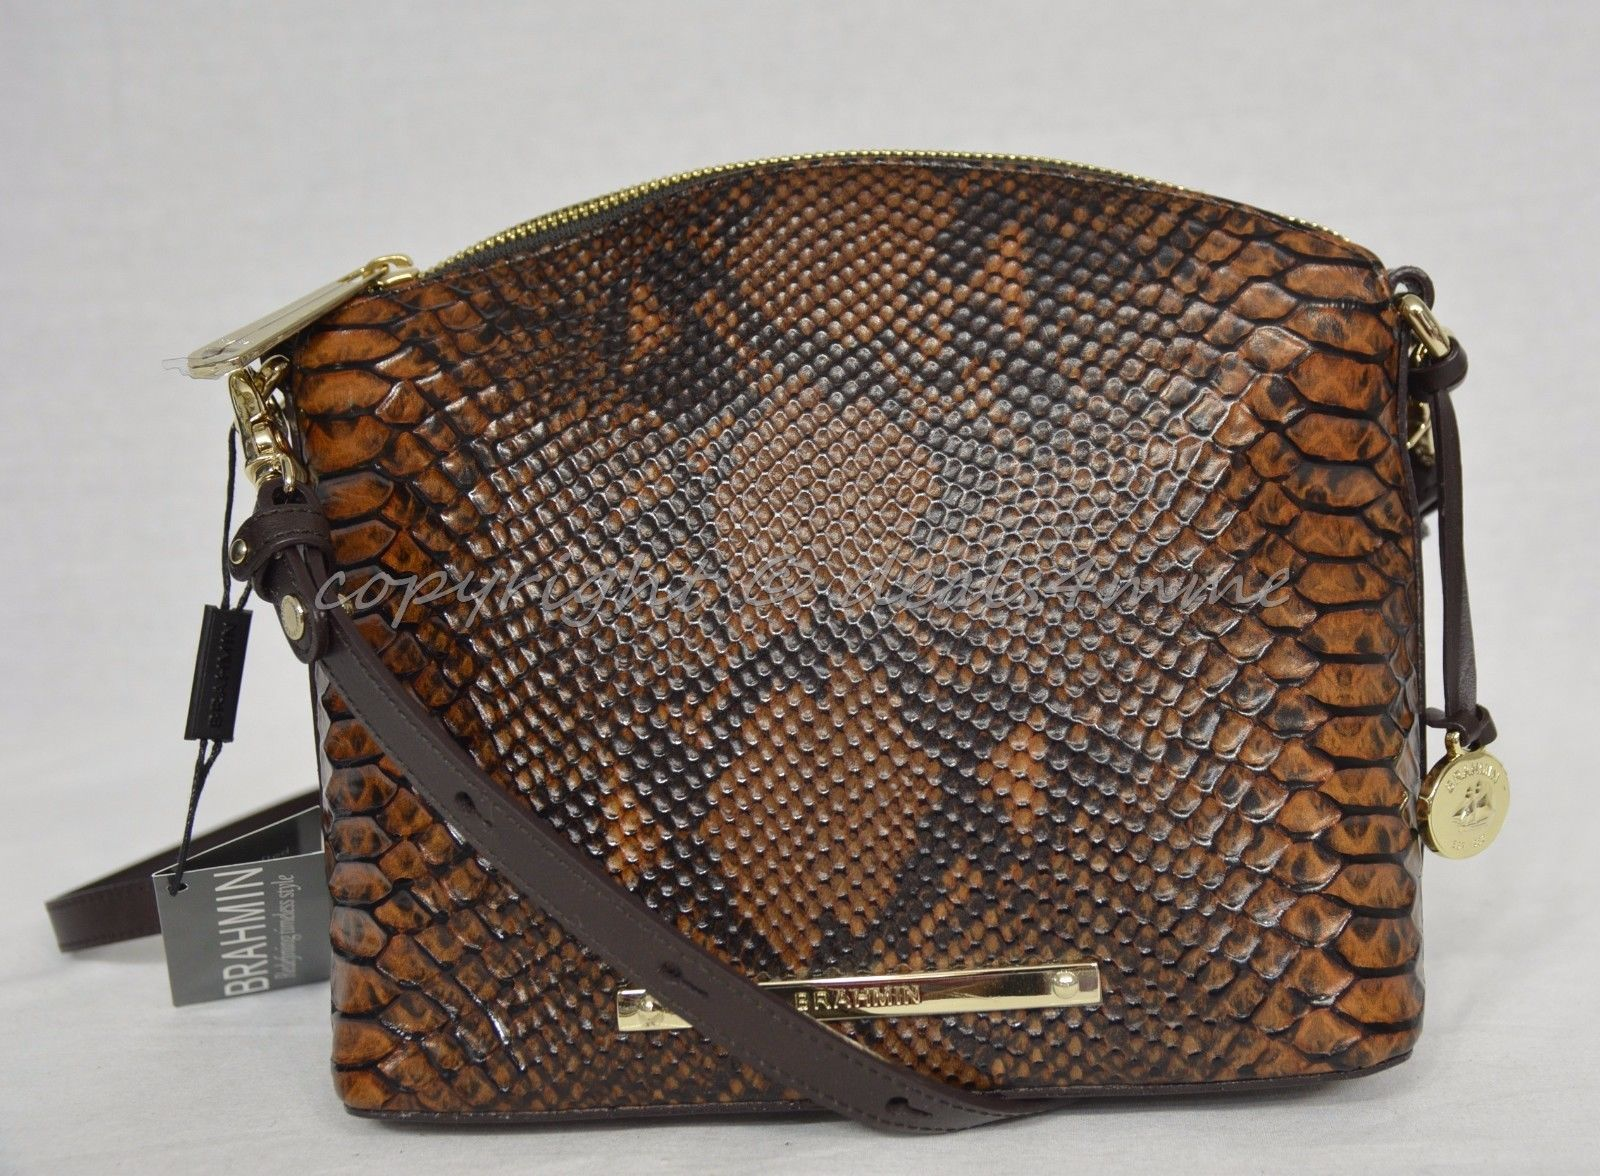 NWT Brahmin Mini Duxbury Shoulder Bag in Tortoise Seville Brown Embossed Leather